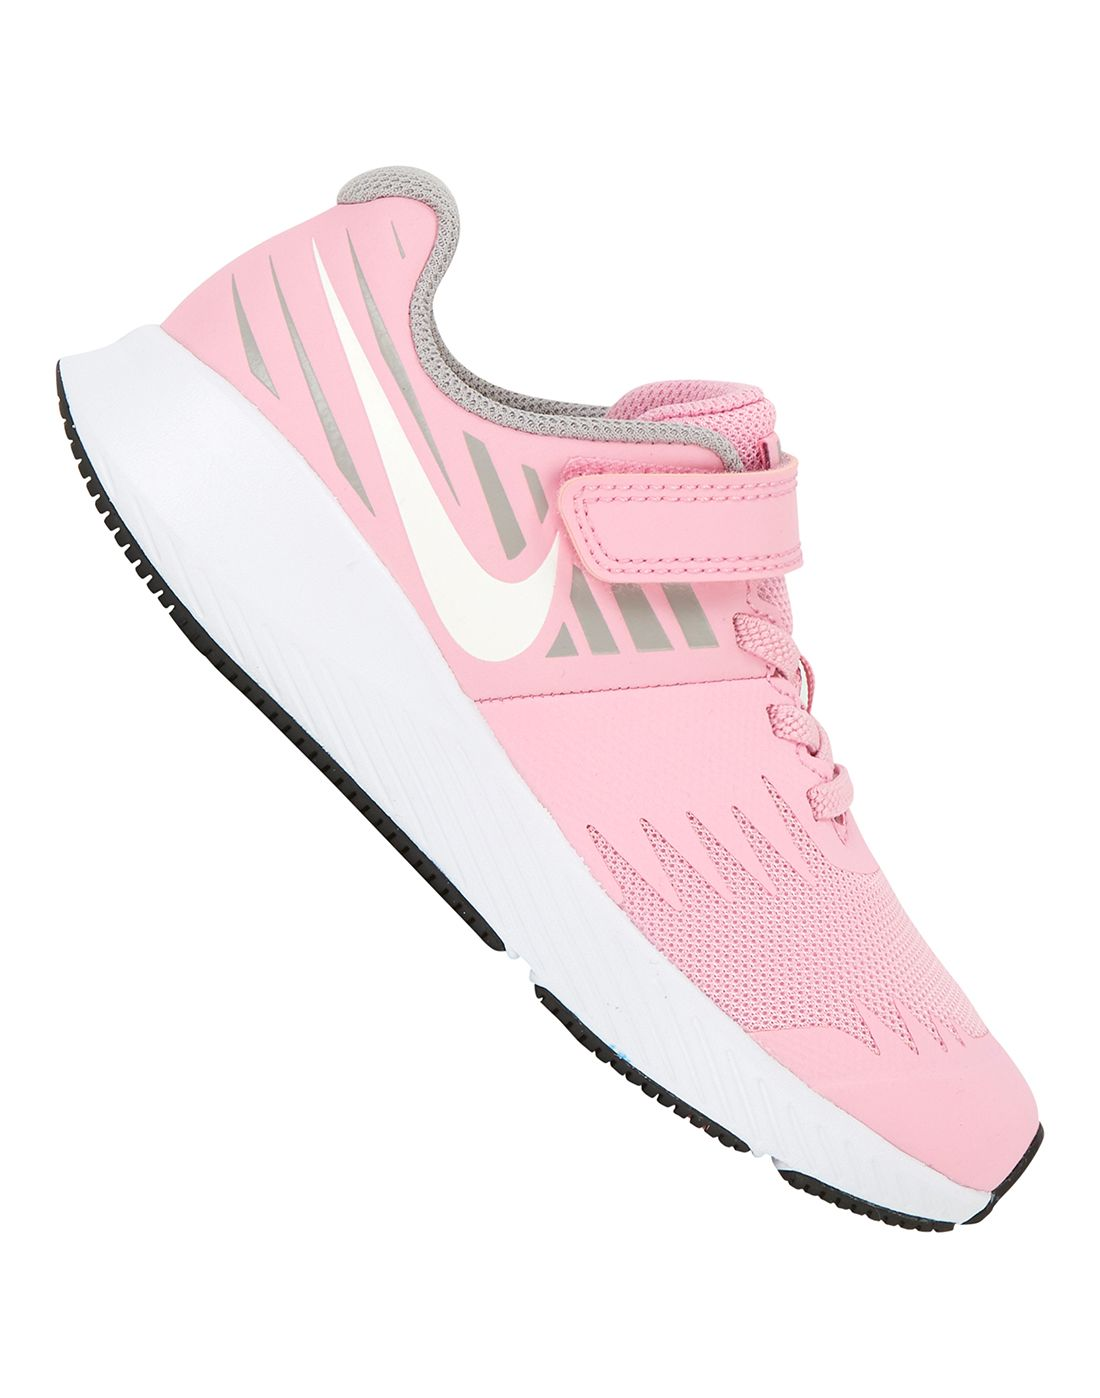 44ce4b5535dc0 Nike Younger Girls Star Runner | 2019 kids clothes | Nike runners ...